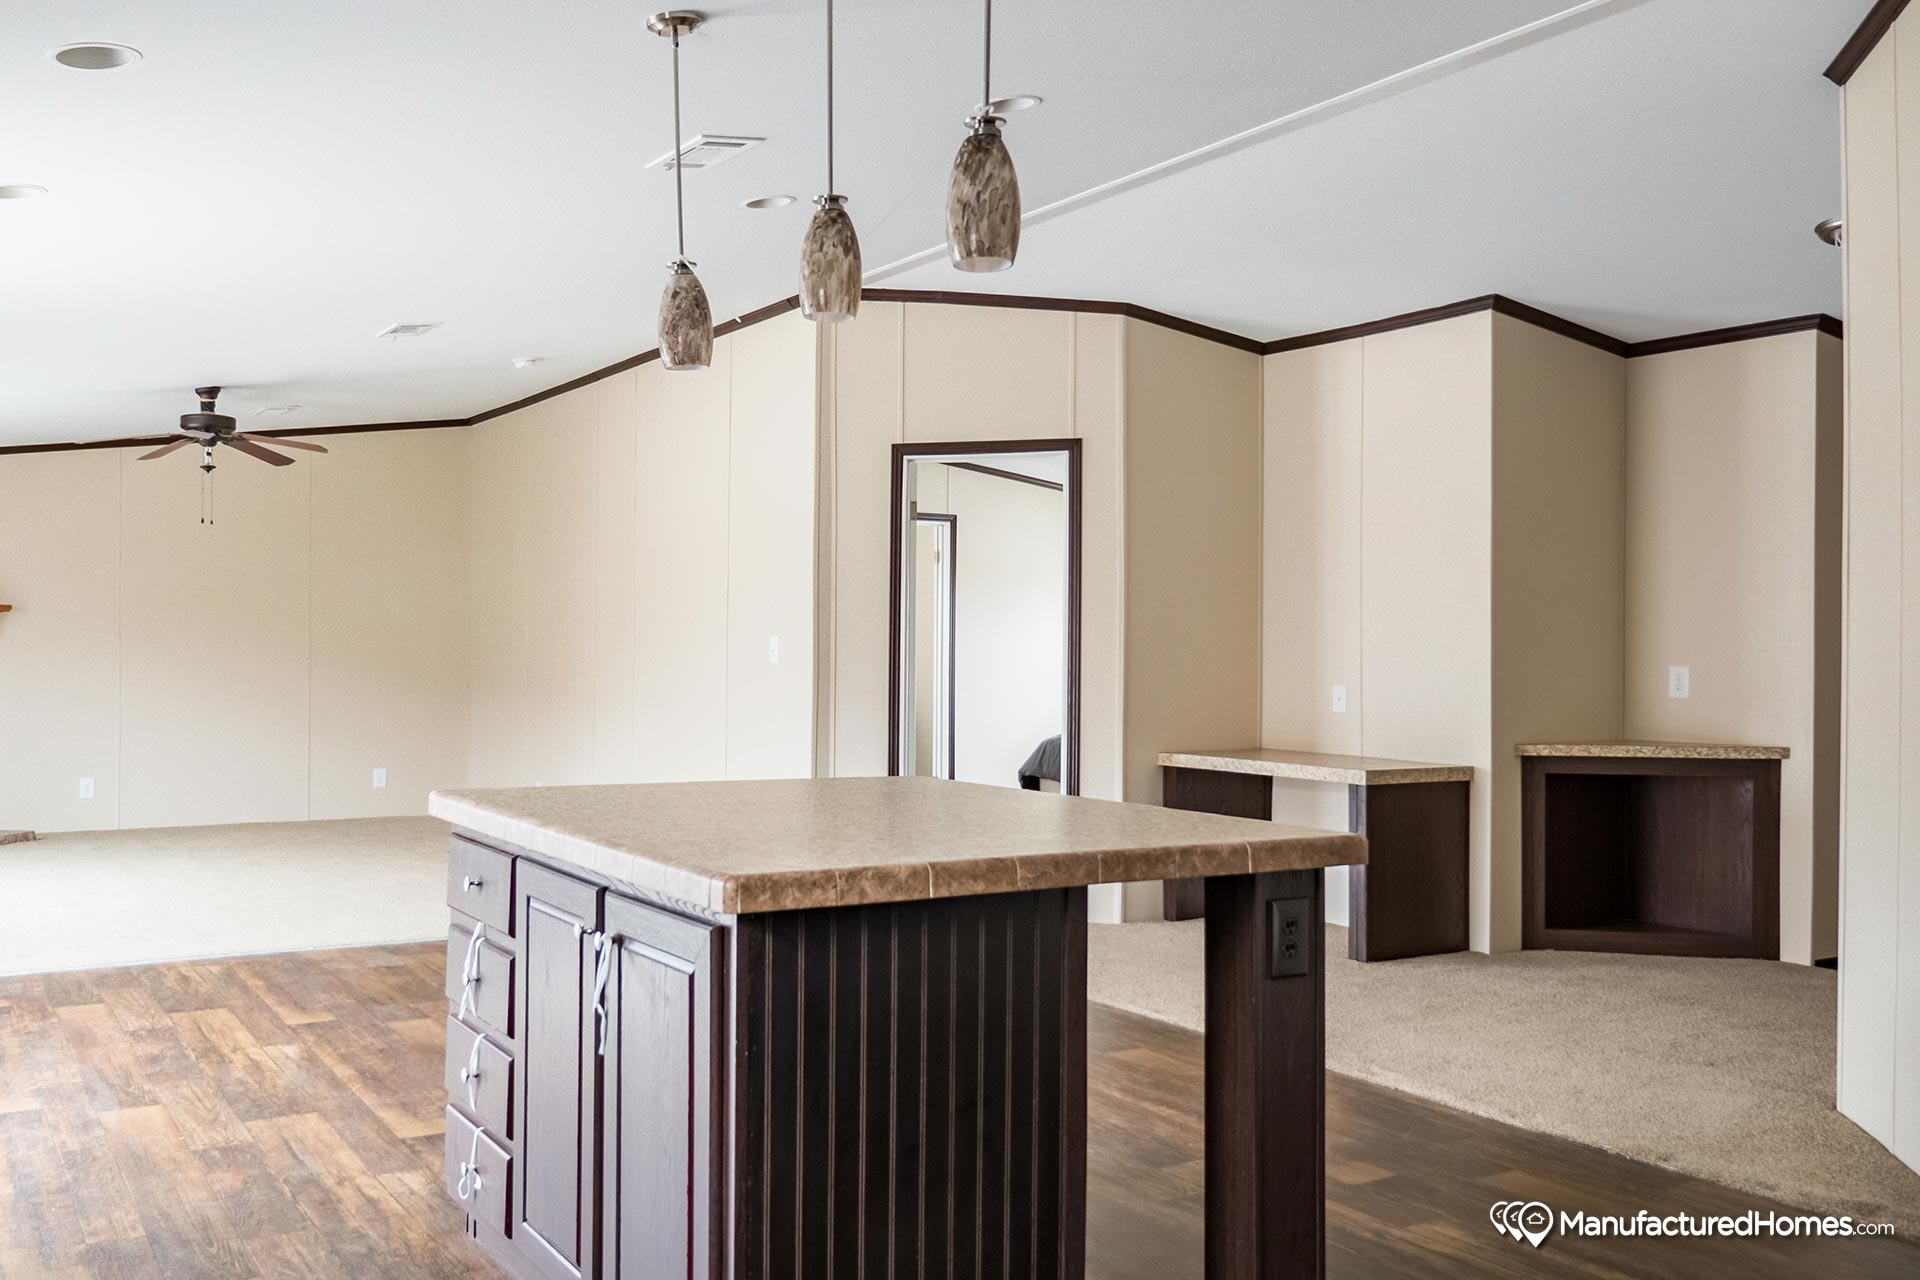 A-1 Homes in San Antonio, TX - Manufactured Home Dealer